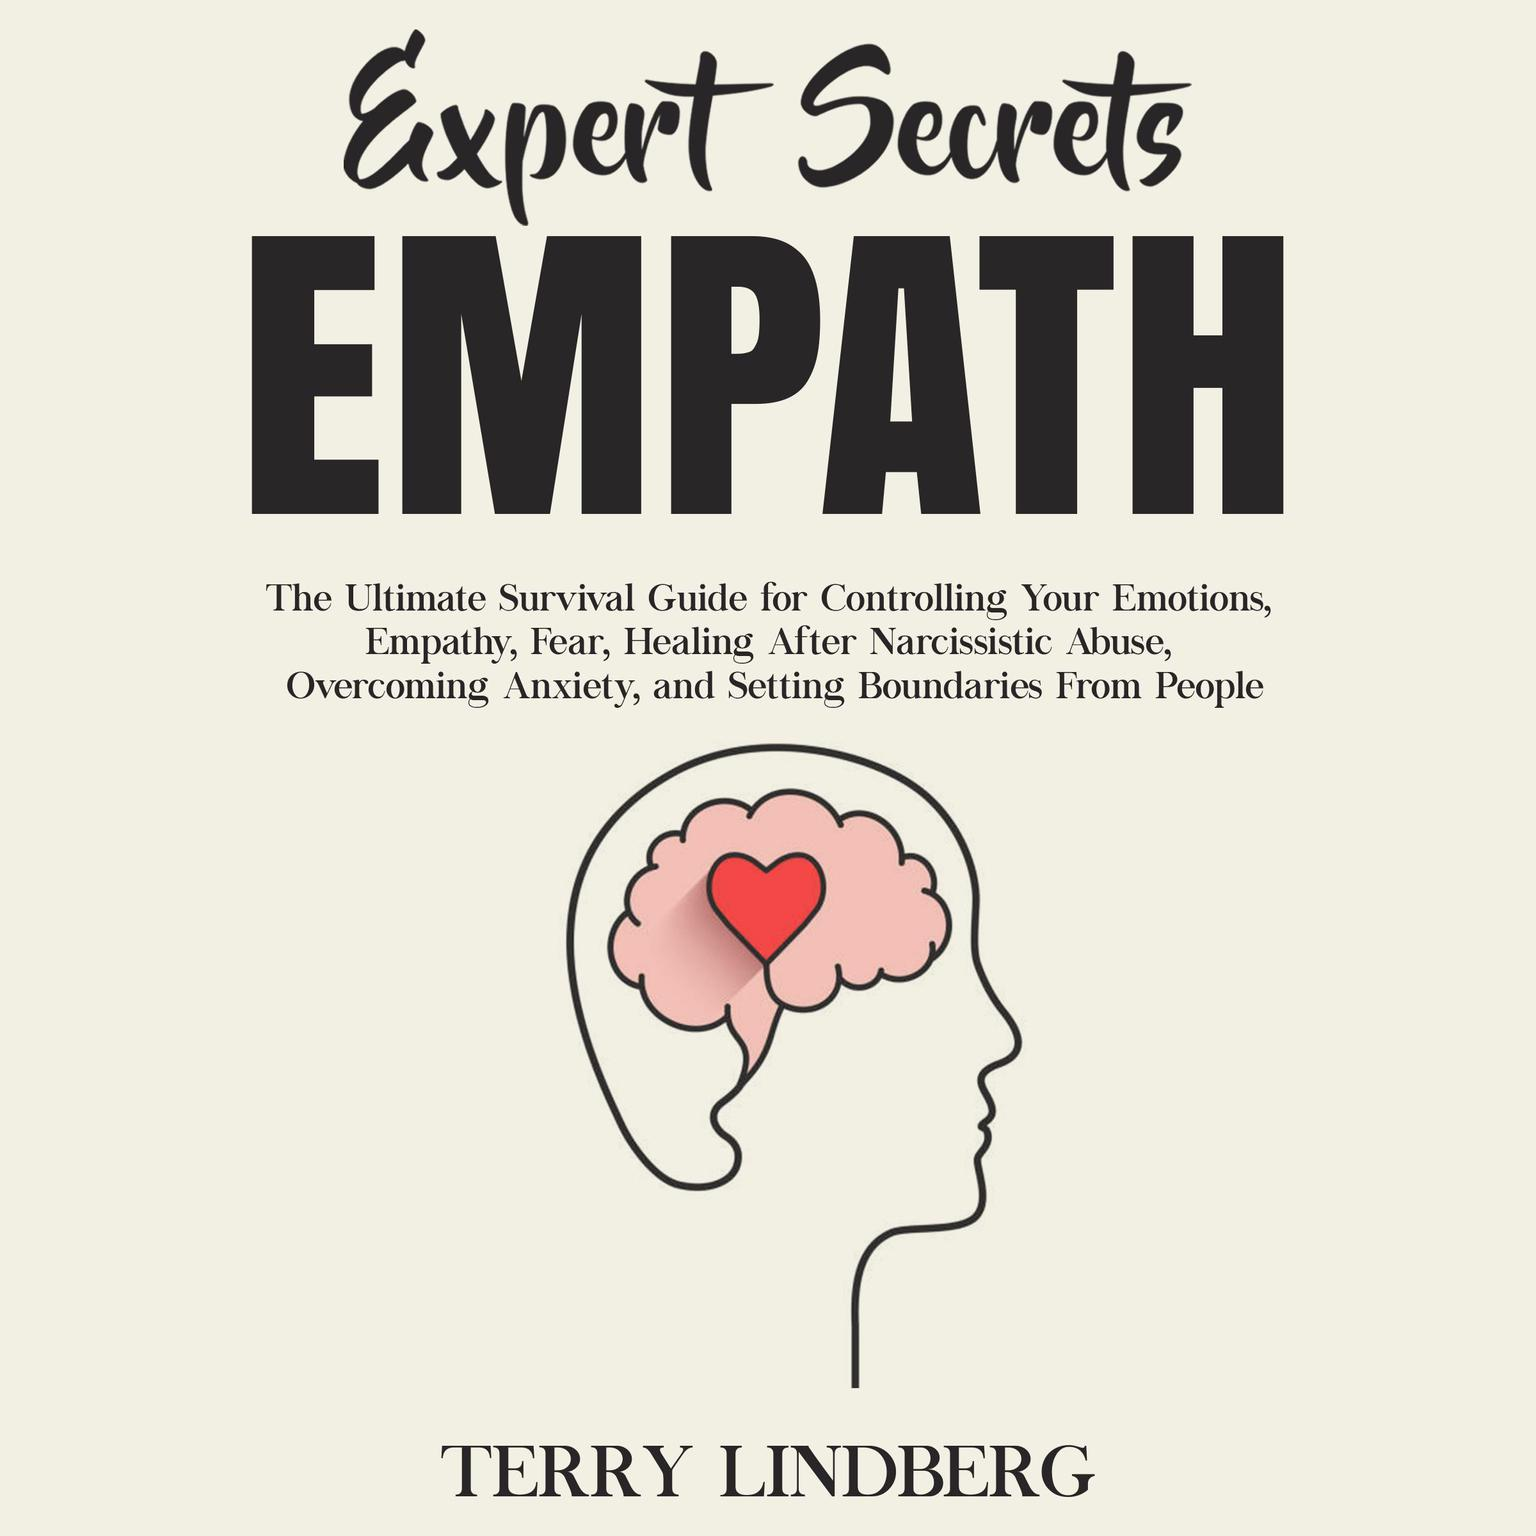 Expert Secrets – Empath: The Ultimate Survival Guide for Controlling Your Emotions, Empathy, Fear, Healing After Narcissistic Abuse, Overcoming Anxiety, and Setting Boundaries From People.: The Ultimate Survival Guide for Controlling Your Emotions, Empathy, Fear, Healing After Narcissistic Abuse, Overcoming Anxiety, and Setting Boundaries From People Audiobook, by Terry Lindberg